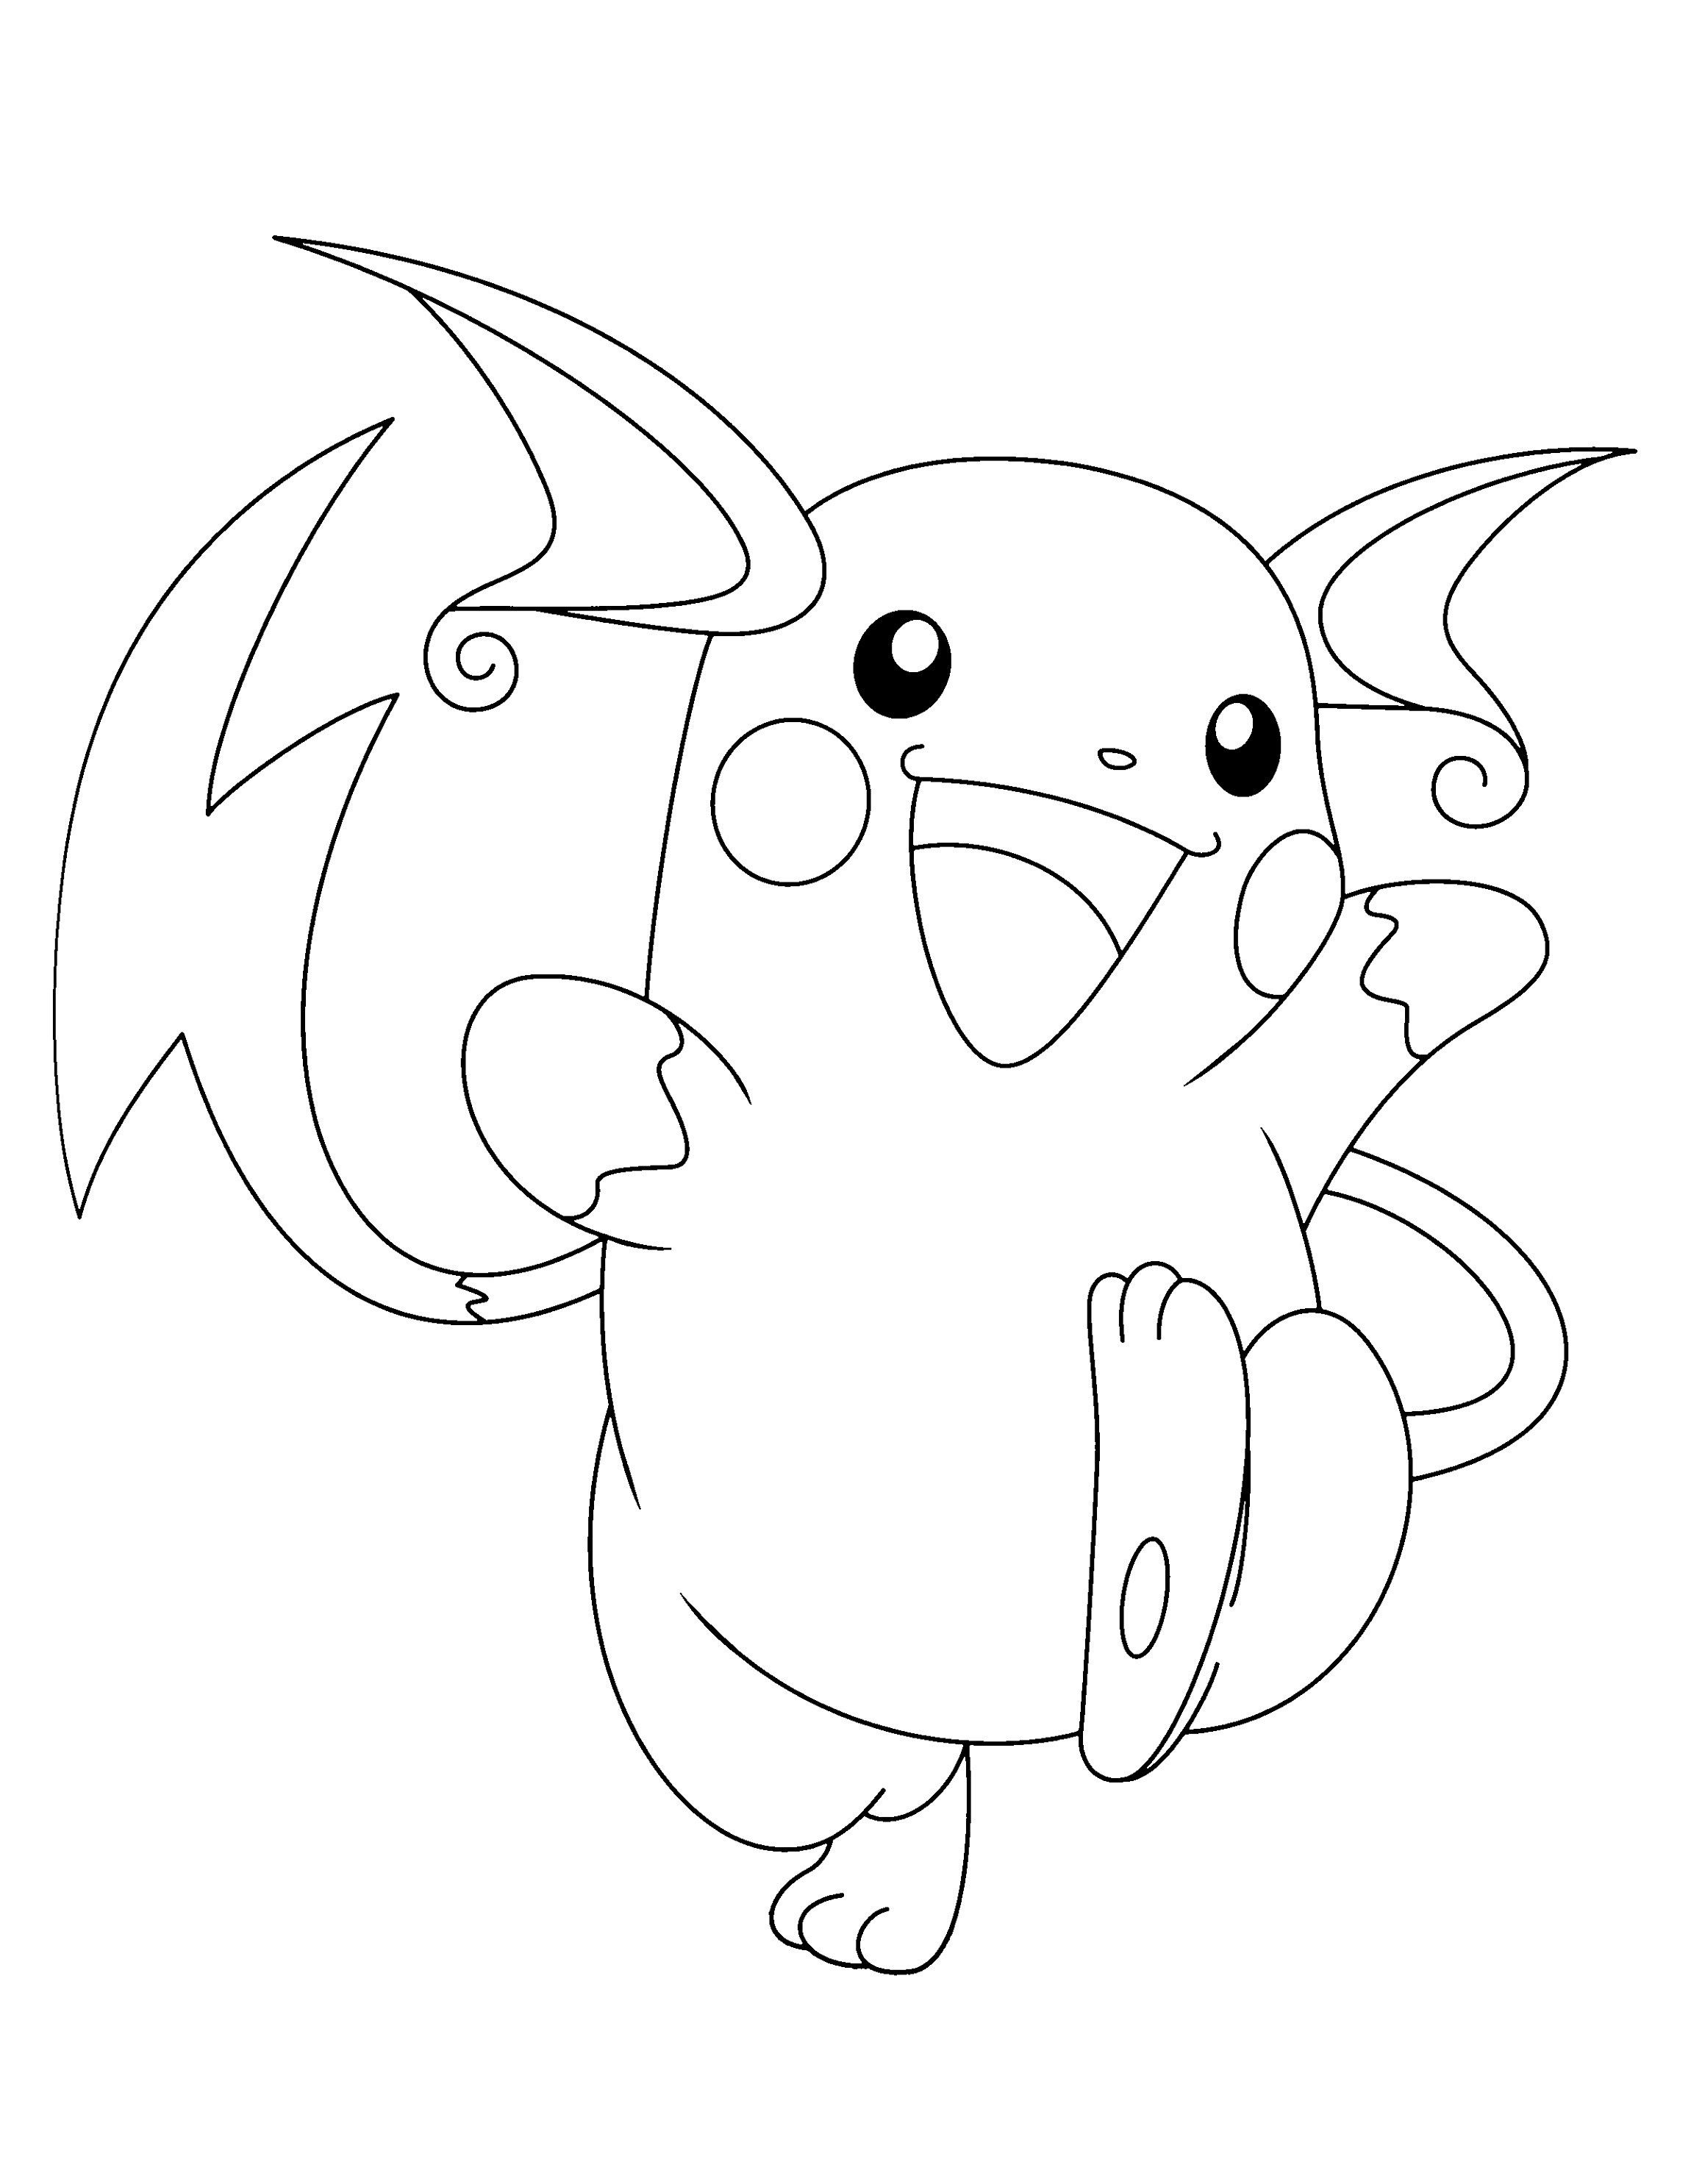 Printable Raichu Pokemon Go Coloring Pages Pokemon Coloring Pages Pokemon Coloring Cartoon Coloring Pages